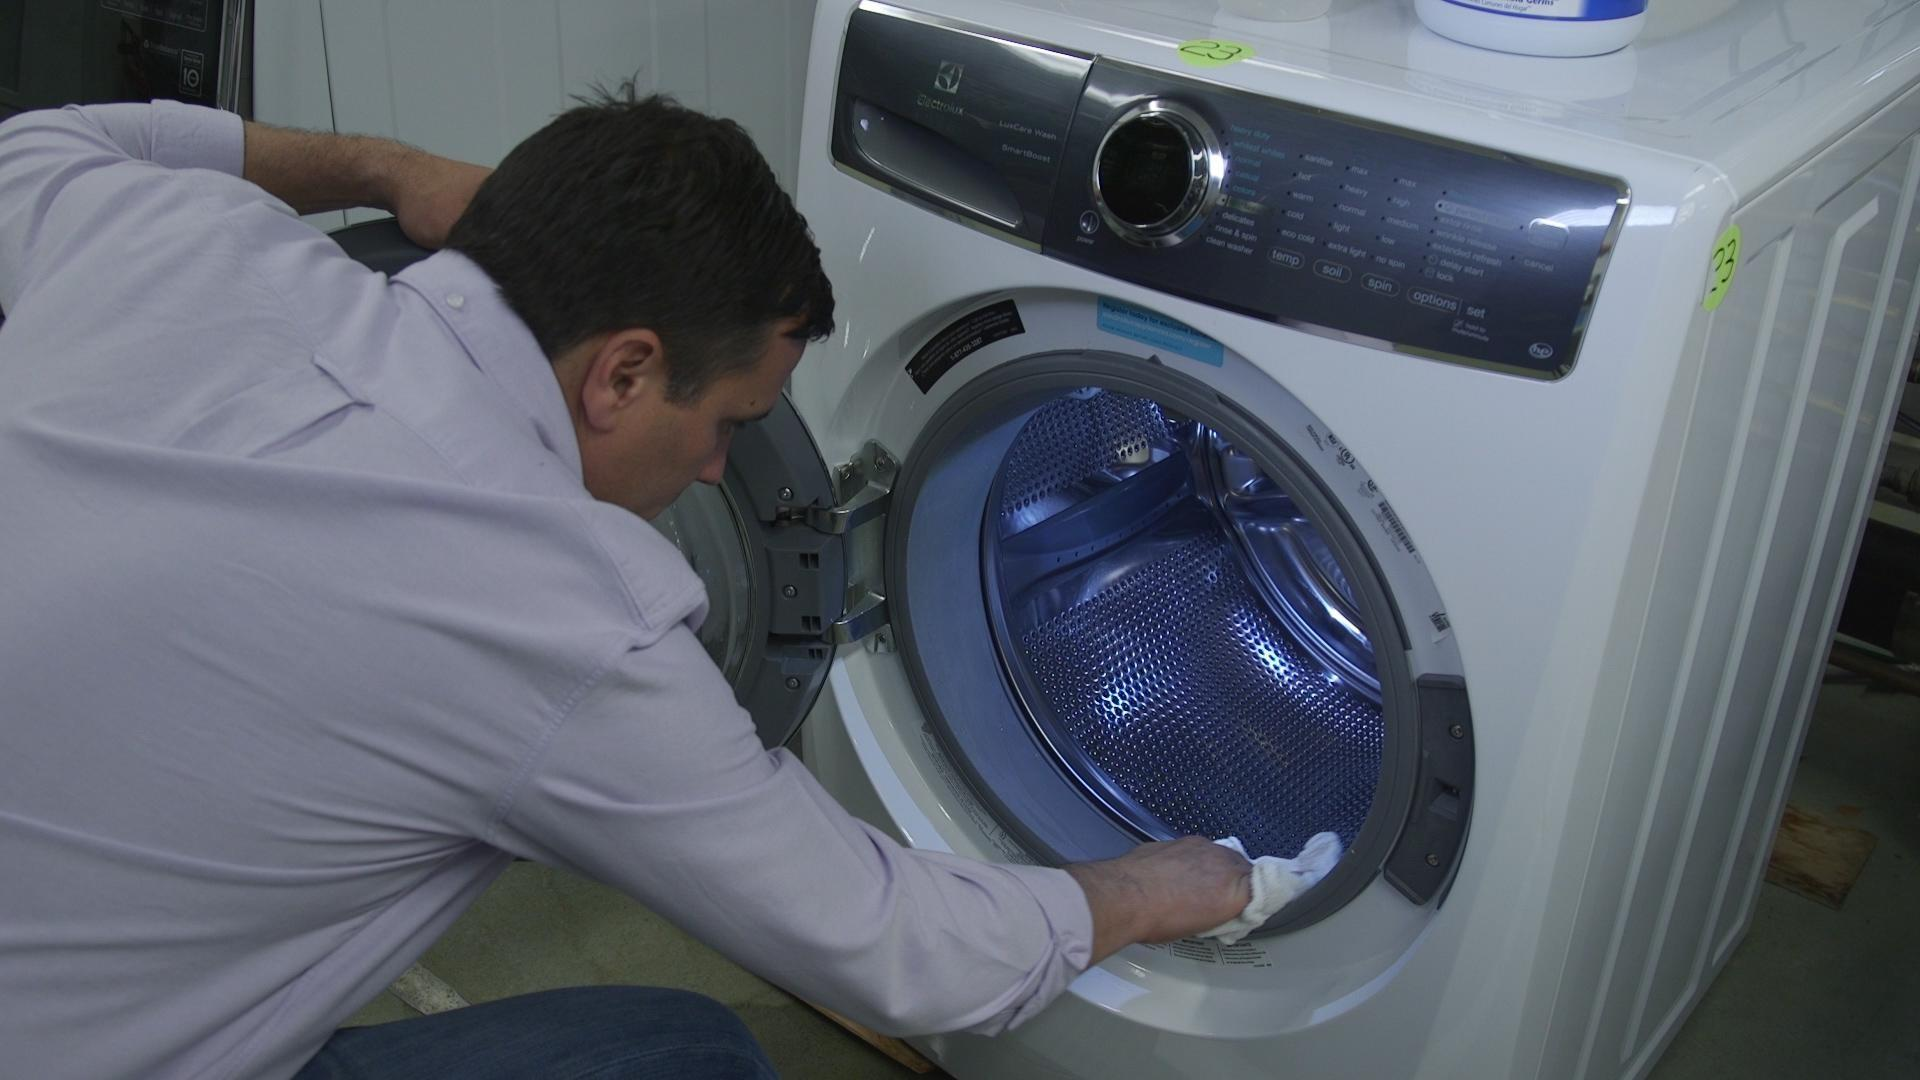 Clean Your Washing Machine Consumer Reports